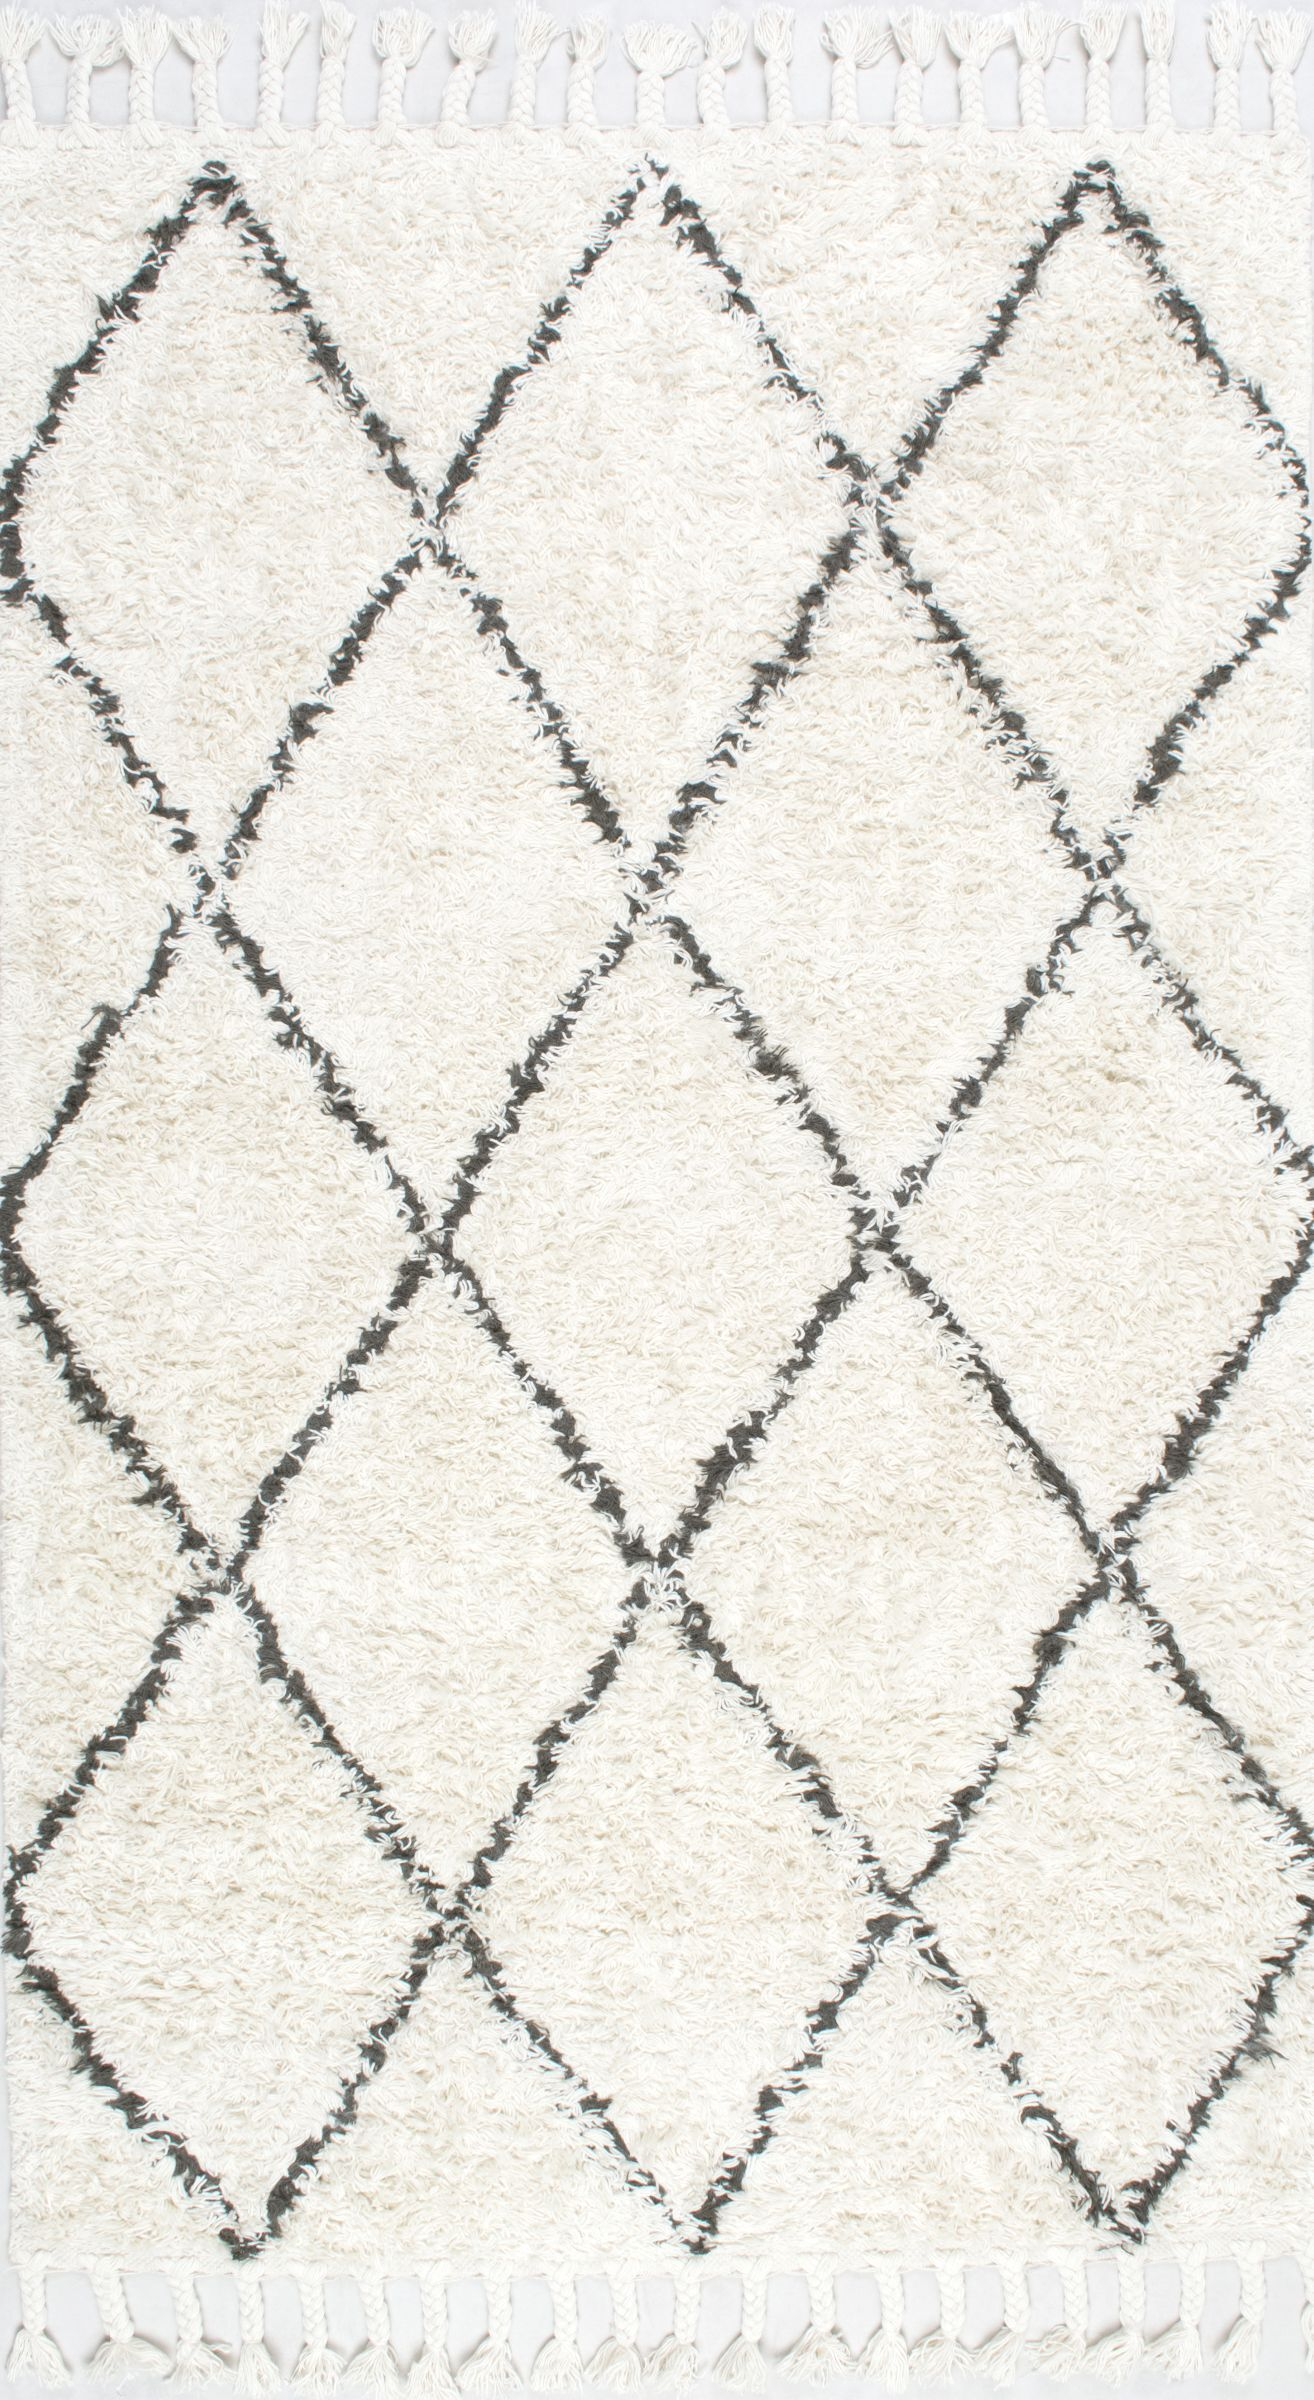 Twinar Hand-Knotted Wool Off White/Dark Grey Area Rug Rug Size: Rectangle 10' x 14'